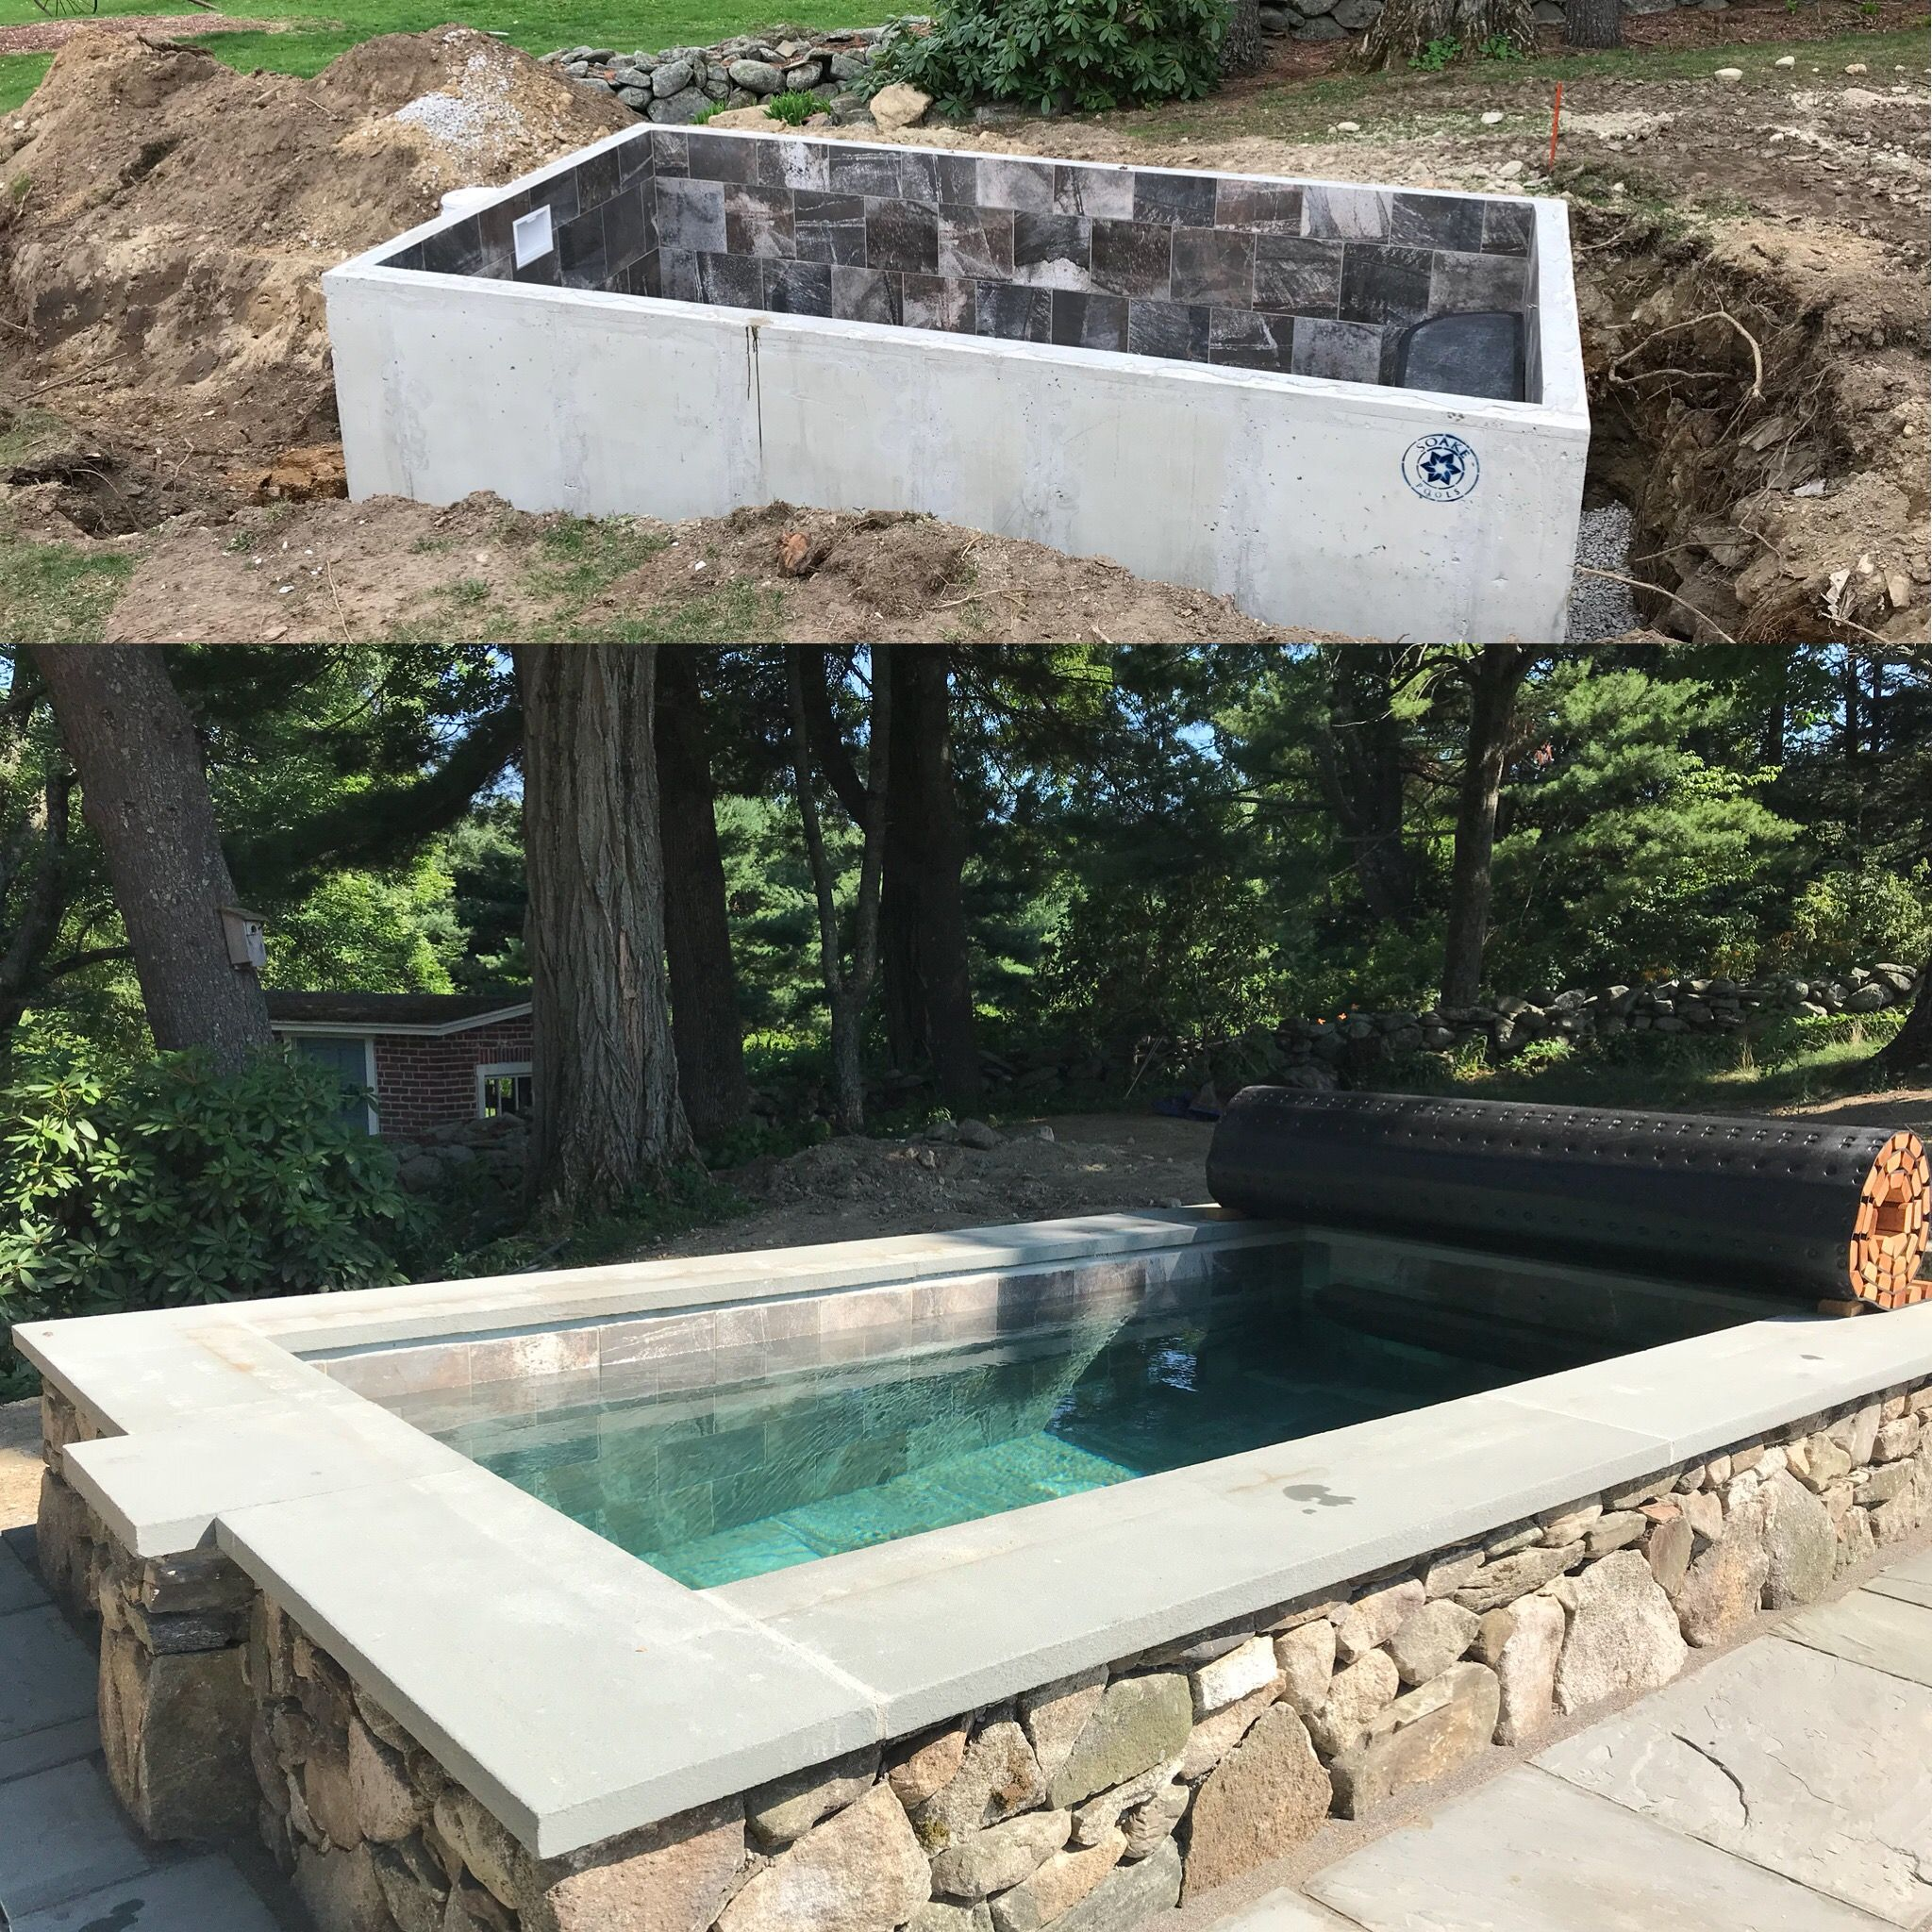 Before and after, stylish outdoor plunge pool by Soake